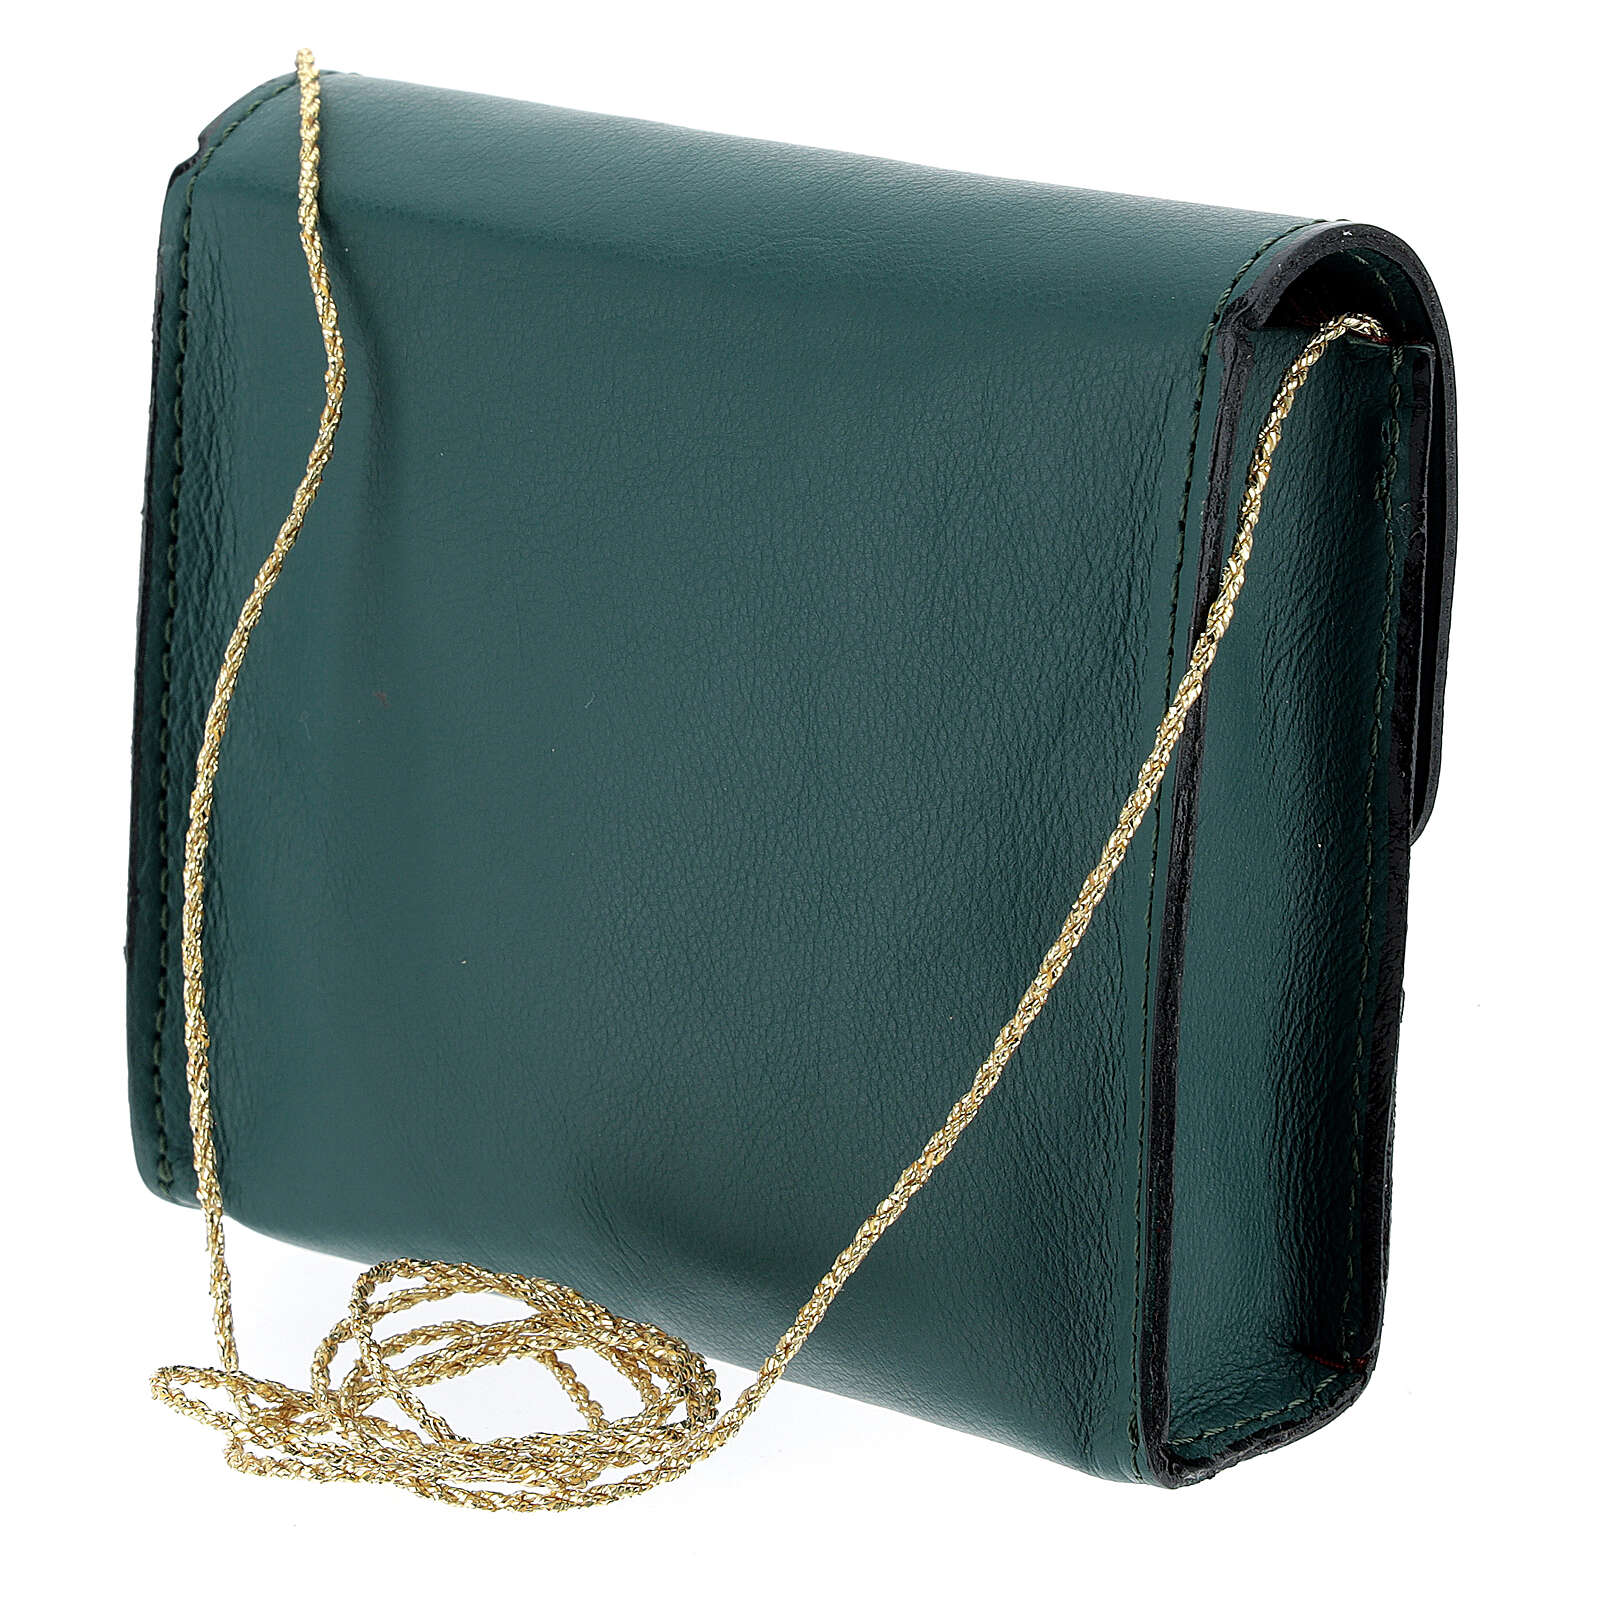 Paten burse 4x5 in real green leather 4